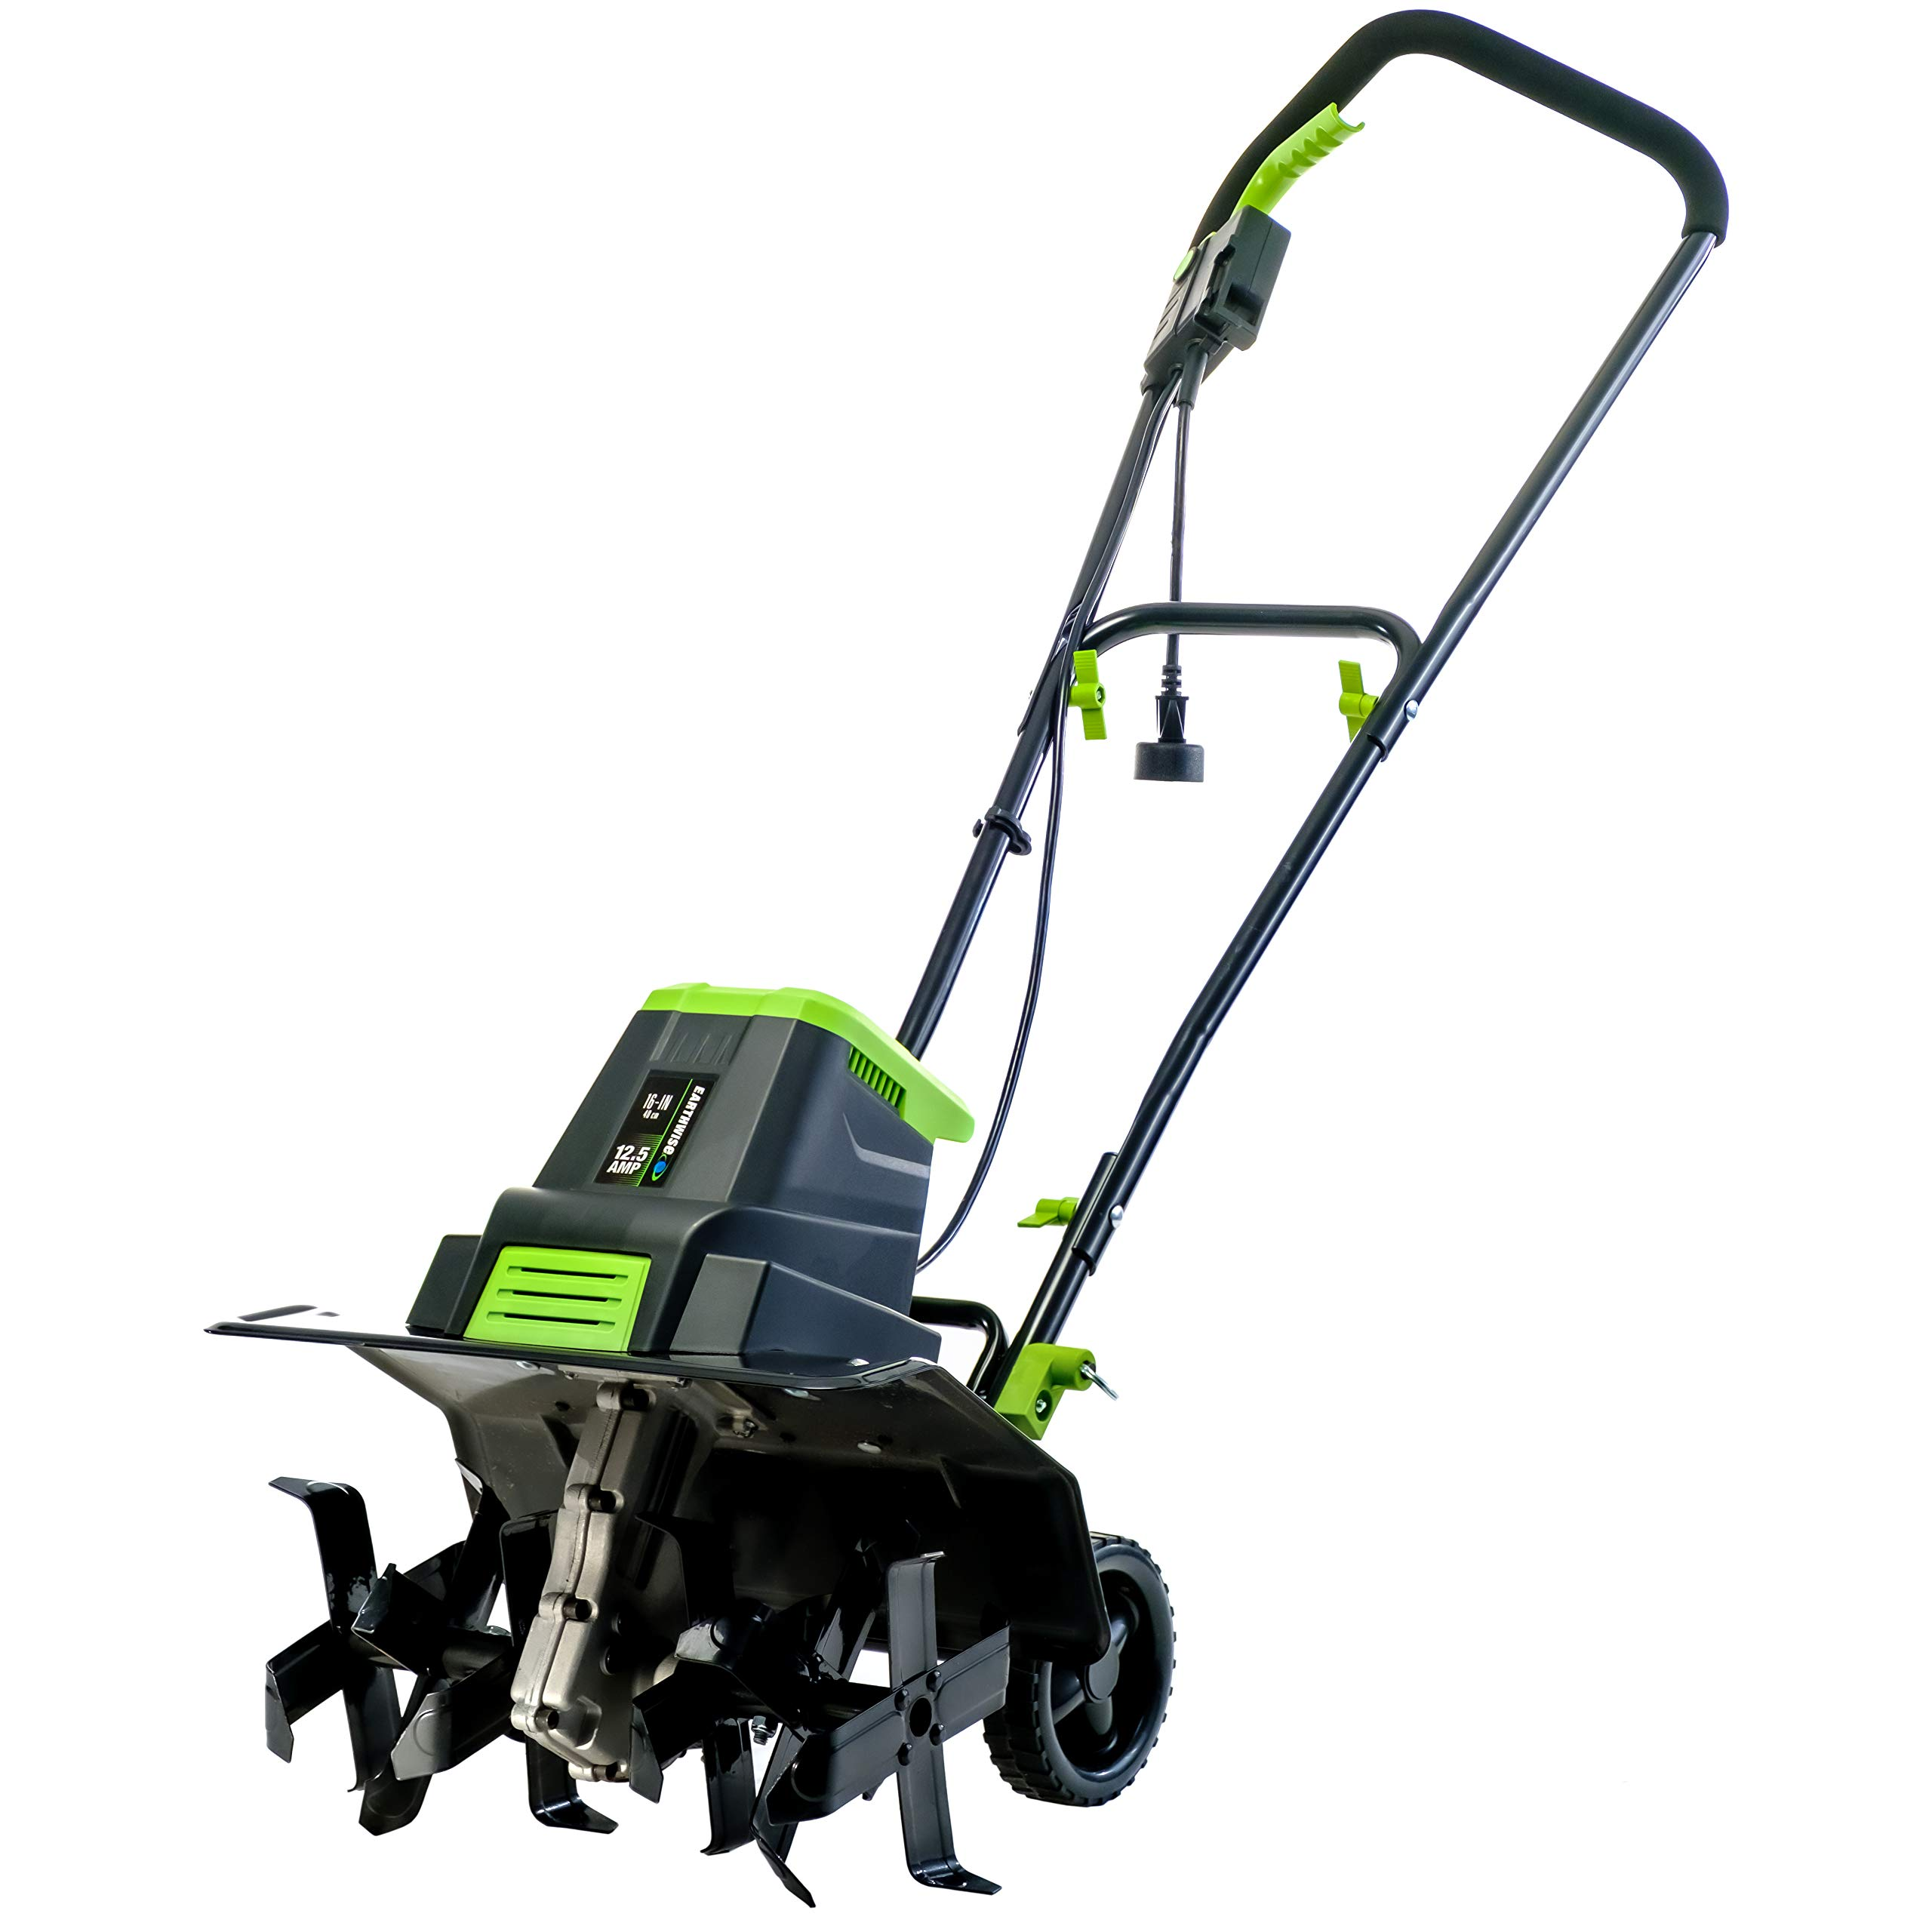 Earthwise TC70125 12 5 Amp 16 Inch Cultivator